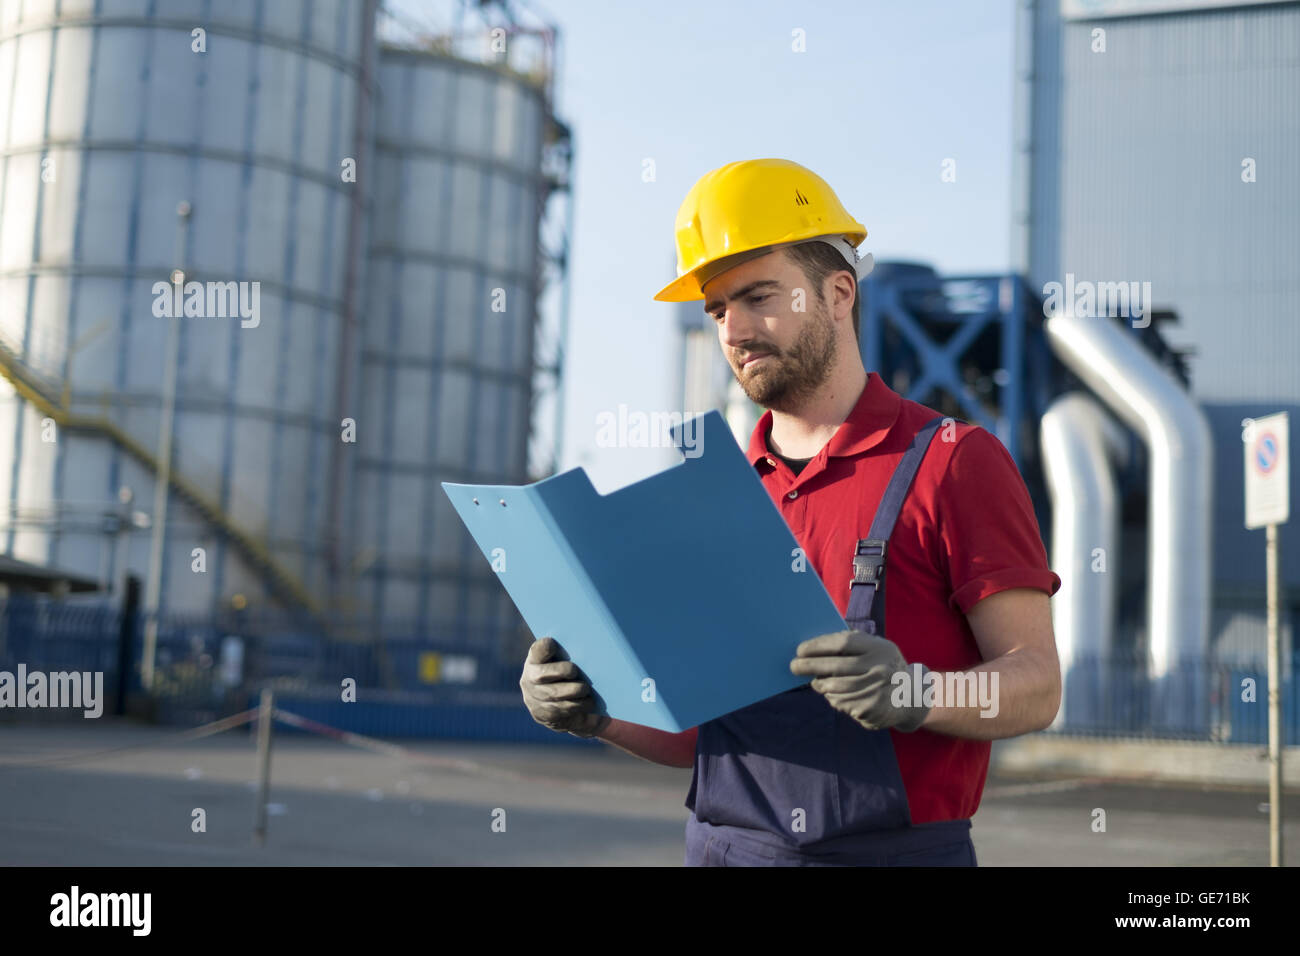 laborer outside a factory working dressed with safety overalls equipment - Stock Image